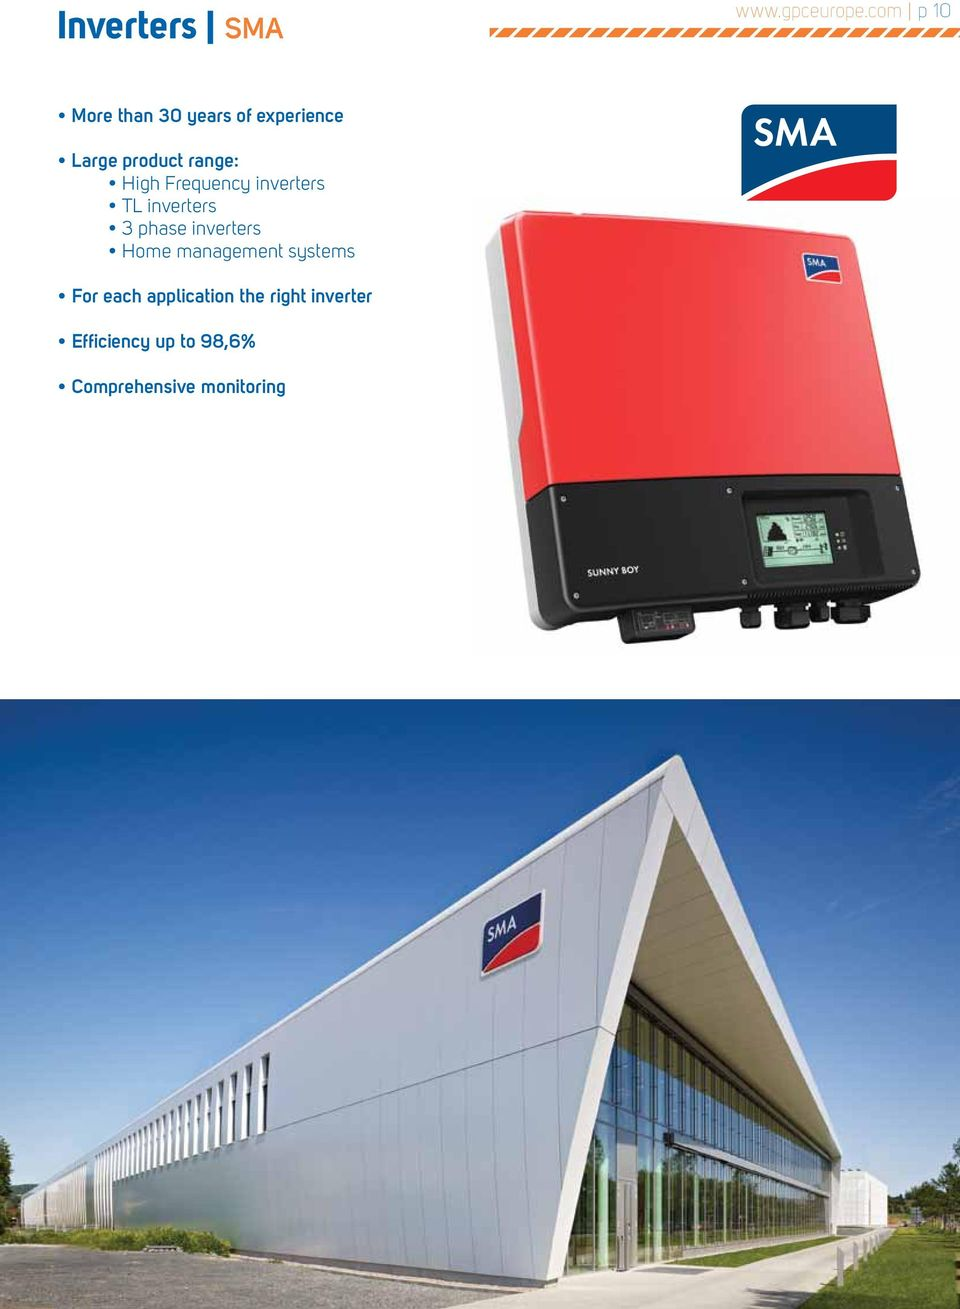 High Frequency inverters TL inverters 3 phase inverters Home